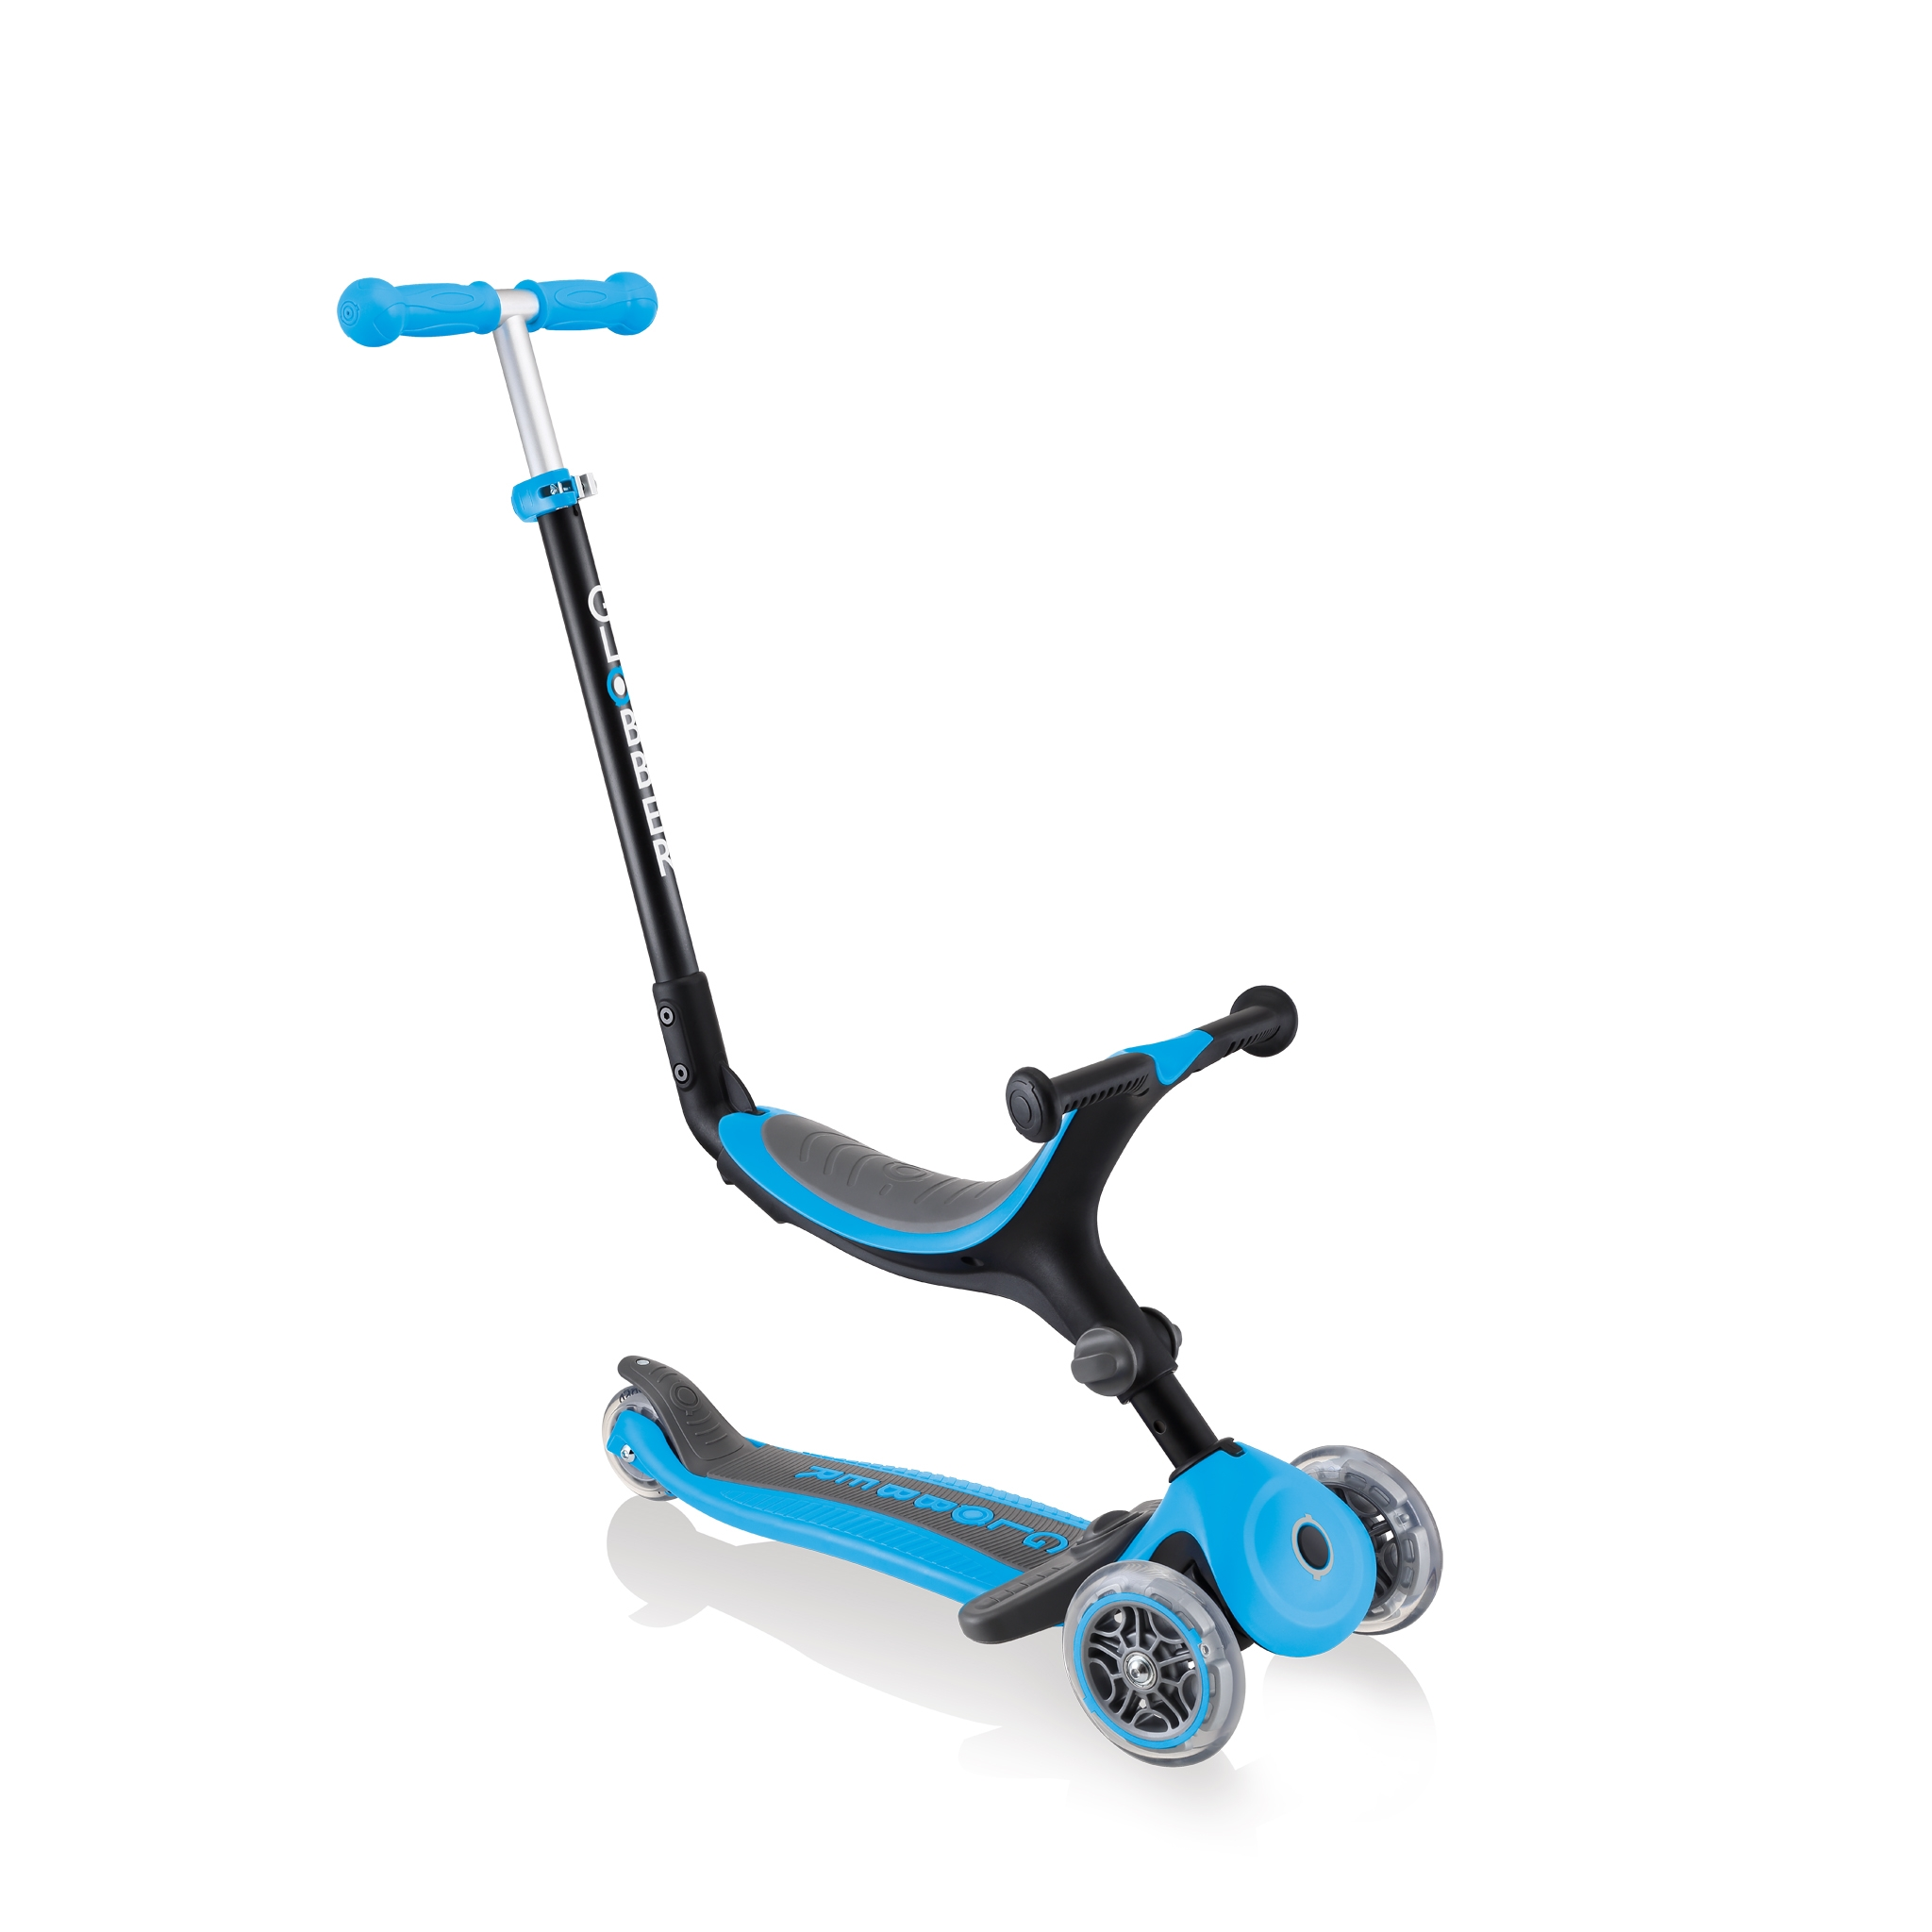 Globber-GO-UP-FOLDABLE-PLUS-3-in-1-scooter-for-toddlers-ride-on-mode 0